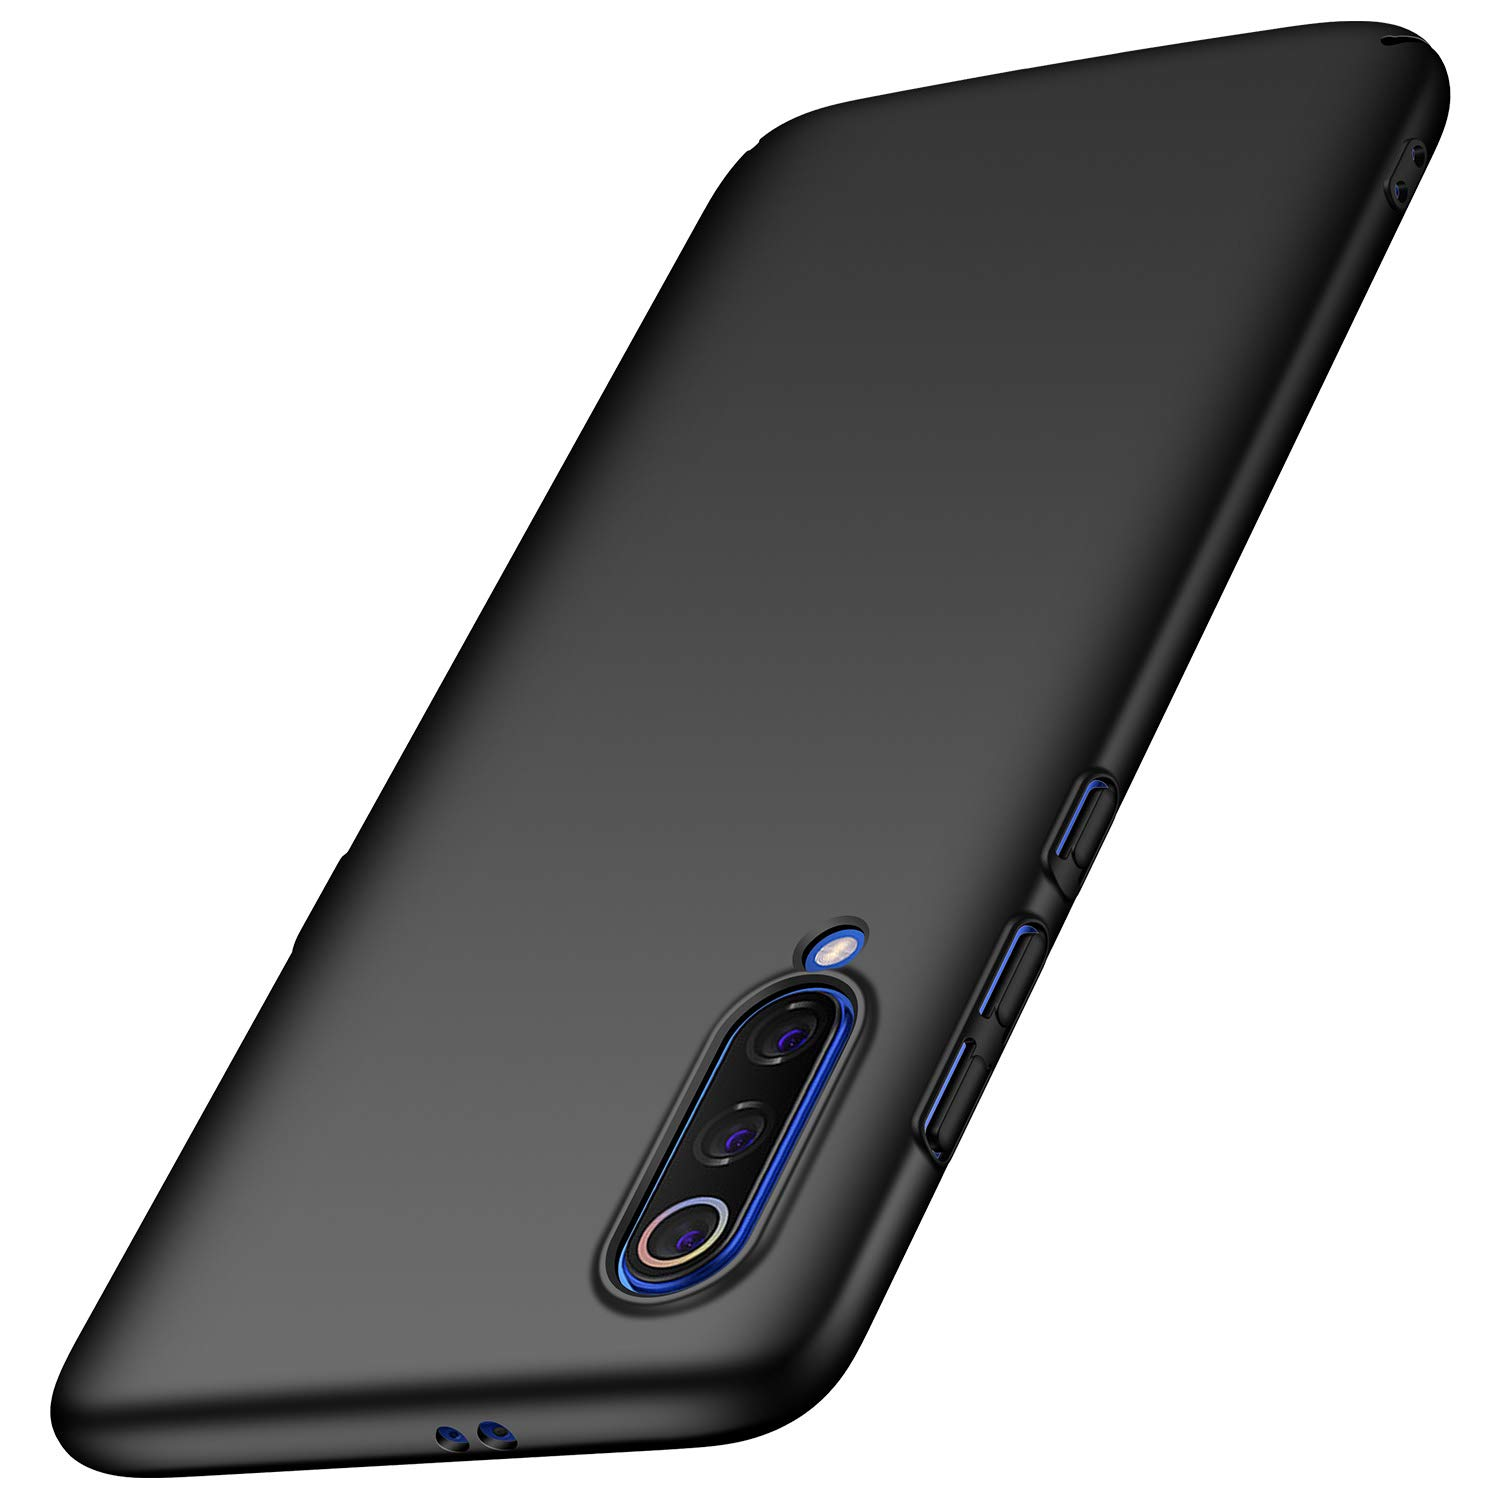 Arkour Xiaomi Mi 9 Case, Minimalist Ultra Thin Slim Fit Smooth Matte Surface Hard PC Cover for Xiaomi Mi 9 (Black)